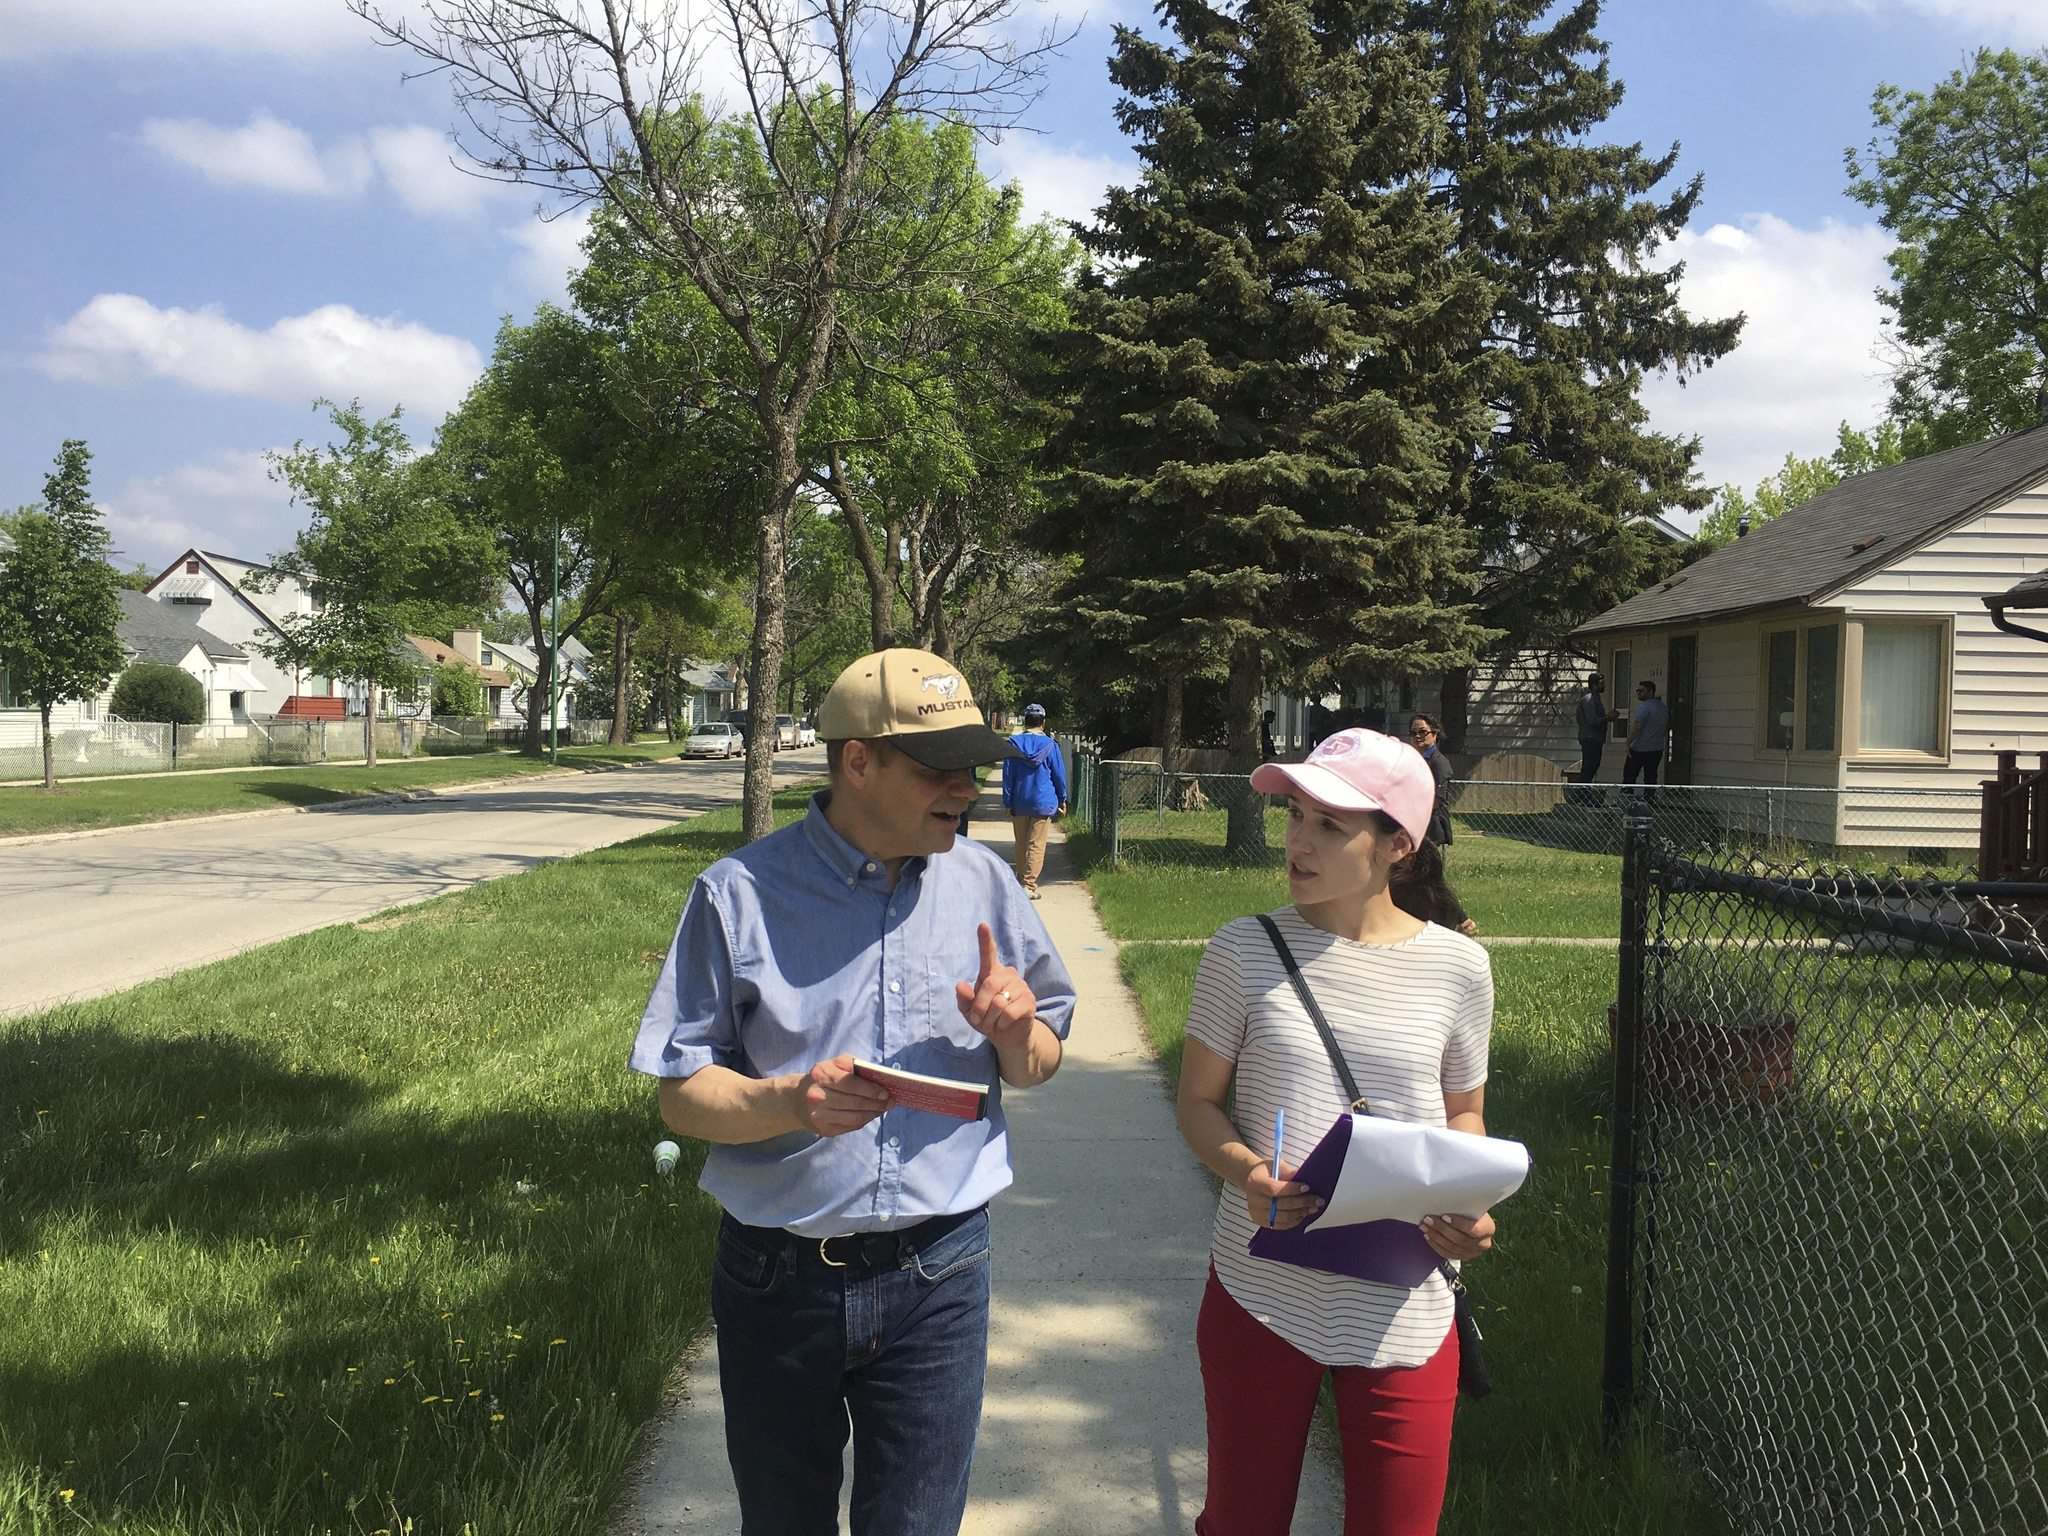 Cindy Lamoureux, Liberal MLA for Burrows, campaigning with her father, Kevin. (Supplied photo)